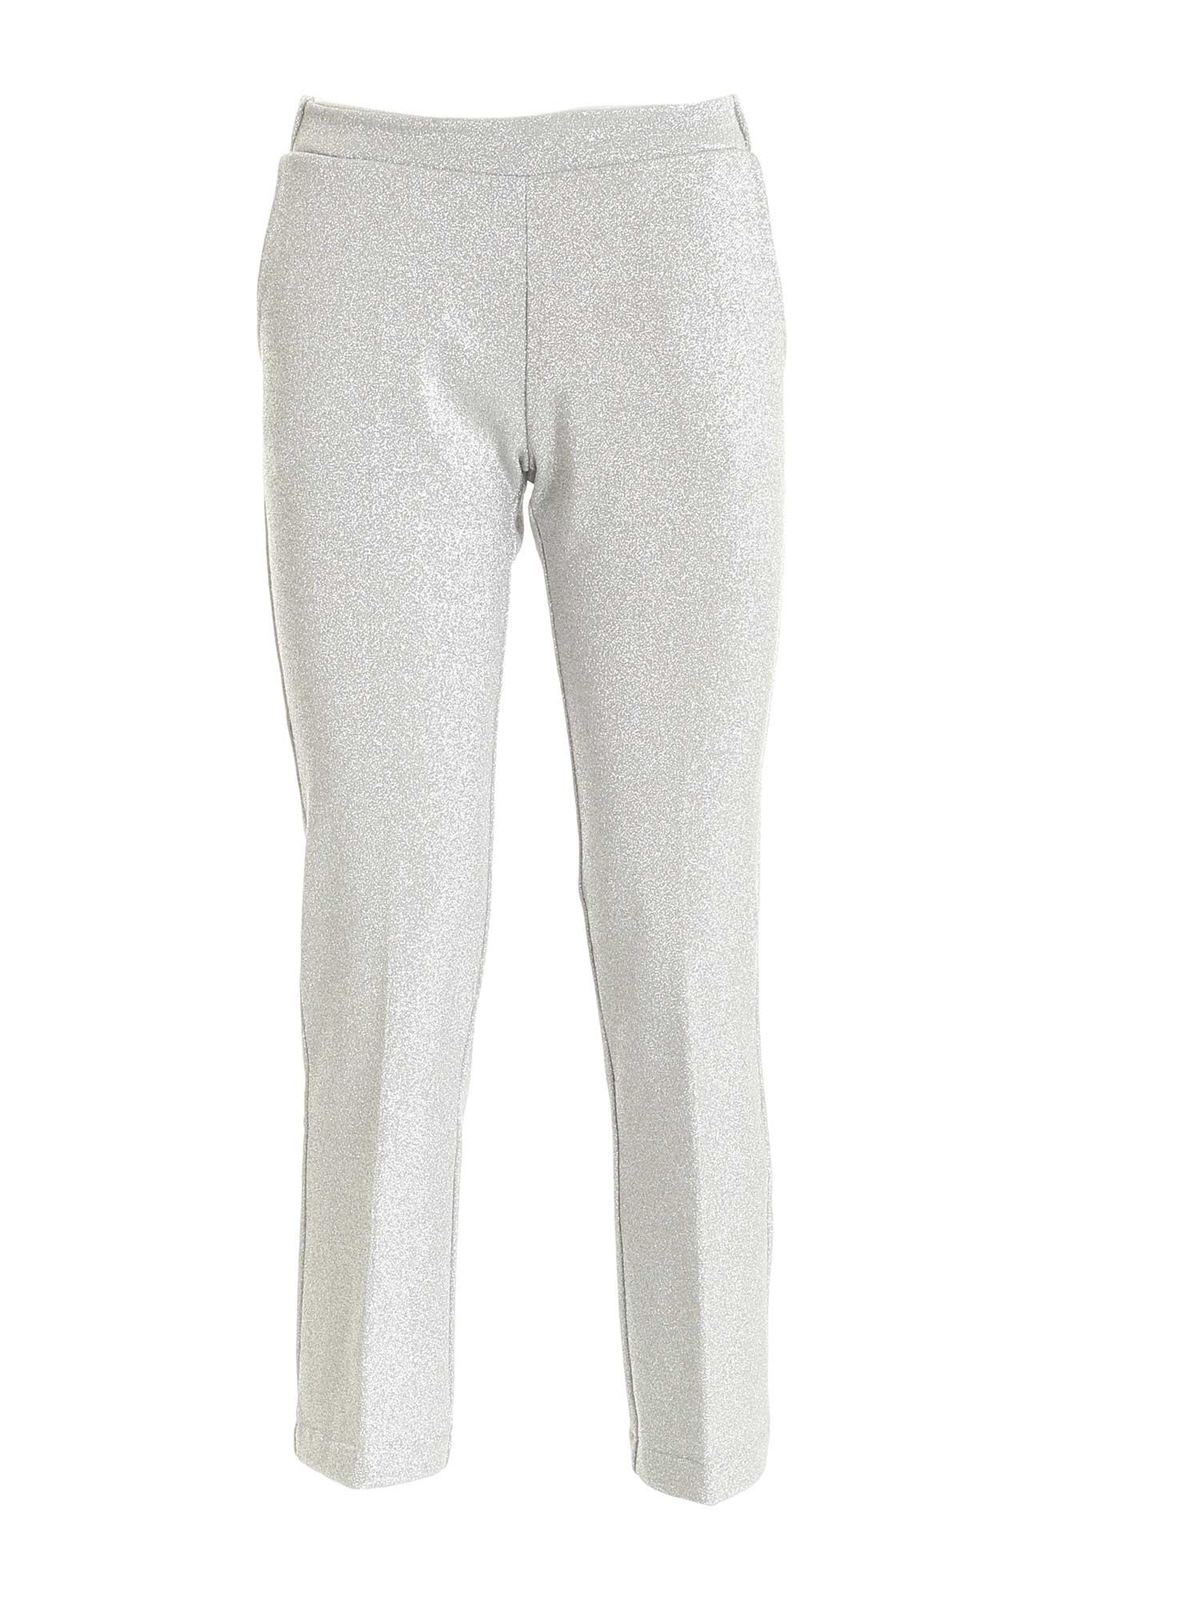 Semicouture VIRGINIE PANTS IN SILVER